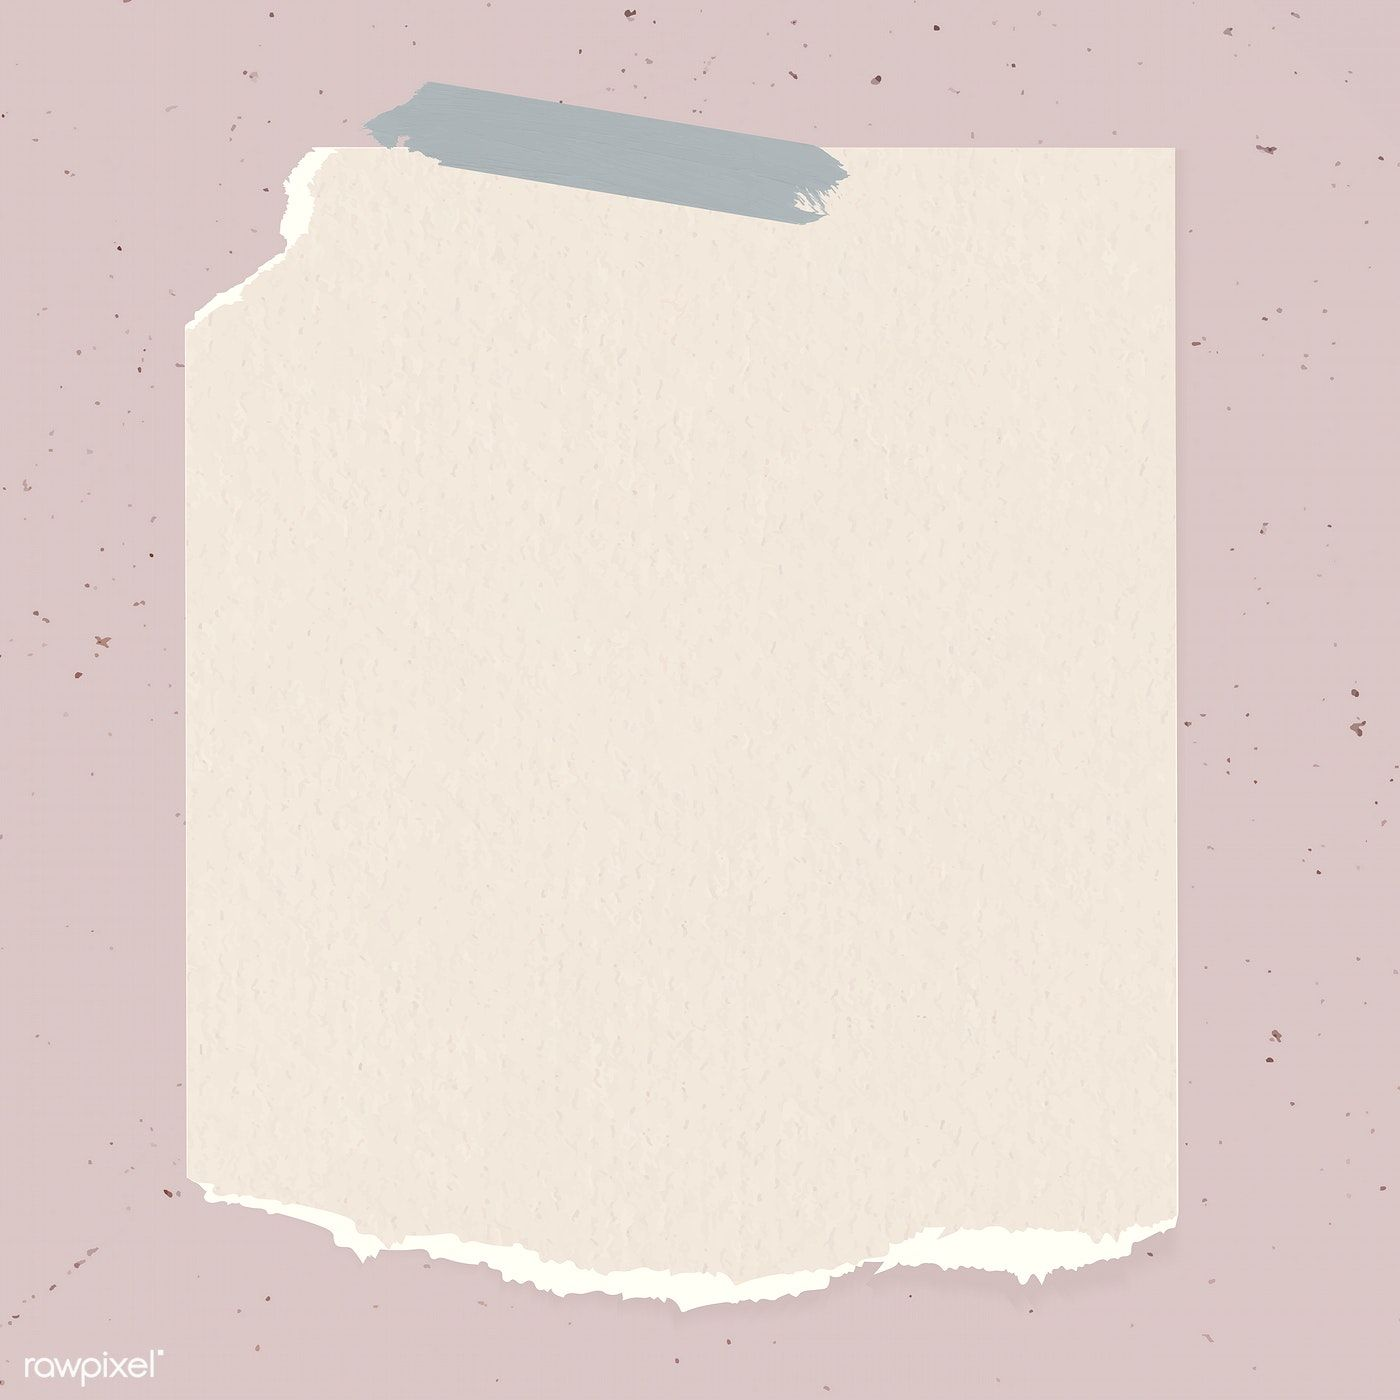 Ripped Paper Note Template Vector Free Image By Rawpixel Com Marinemynt Note Paper Notes Template Powerpoint Background Design